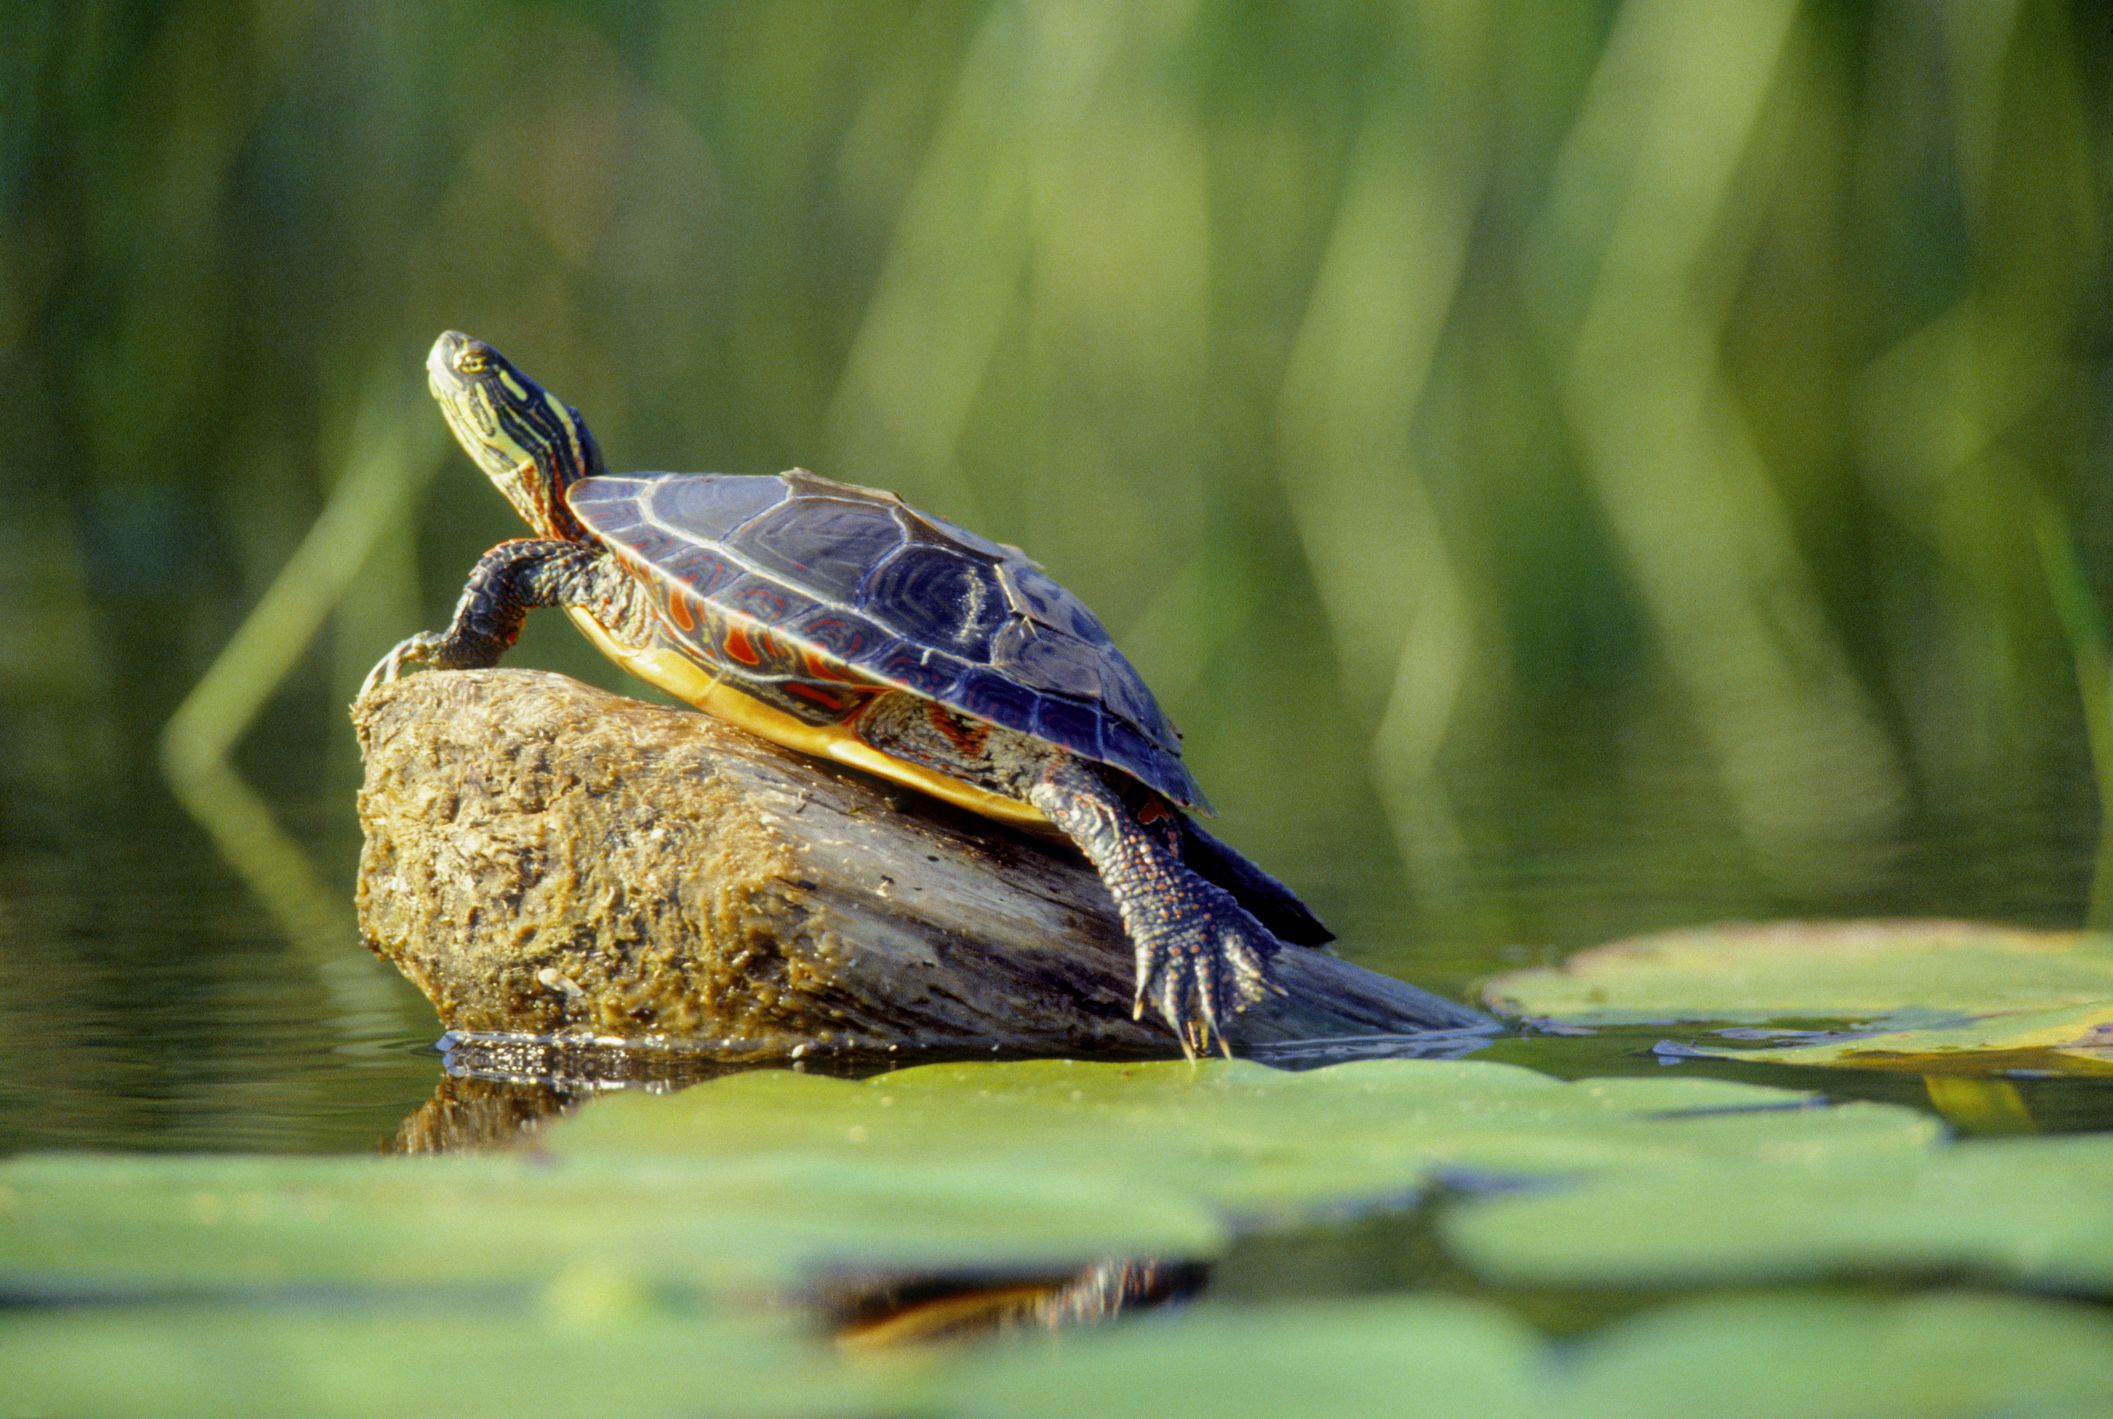 Keeping pet aquatic turtles in outdoor ponds for Keep ducks out of swimming pool